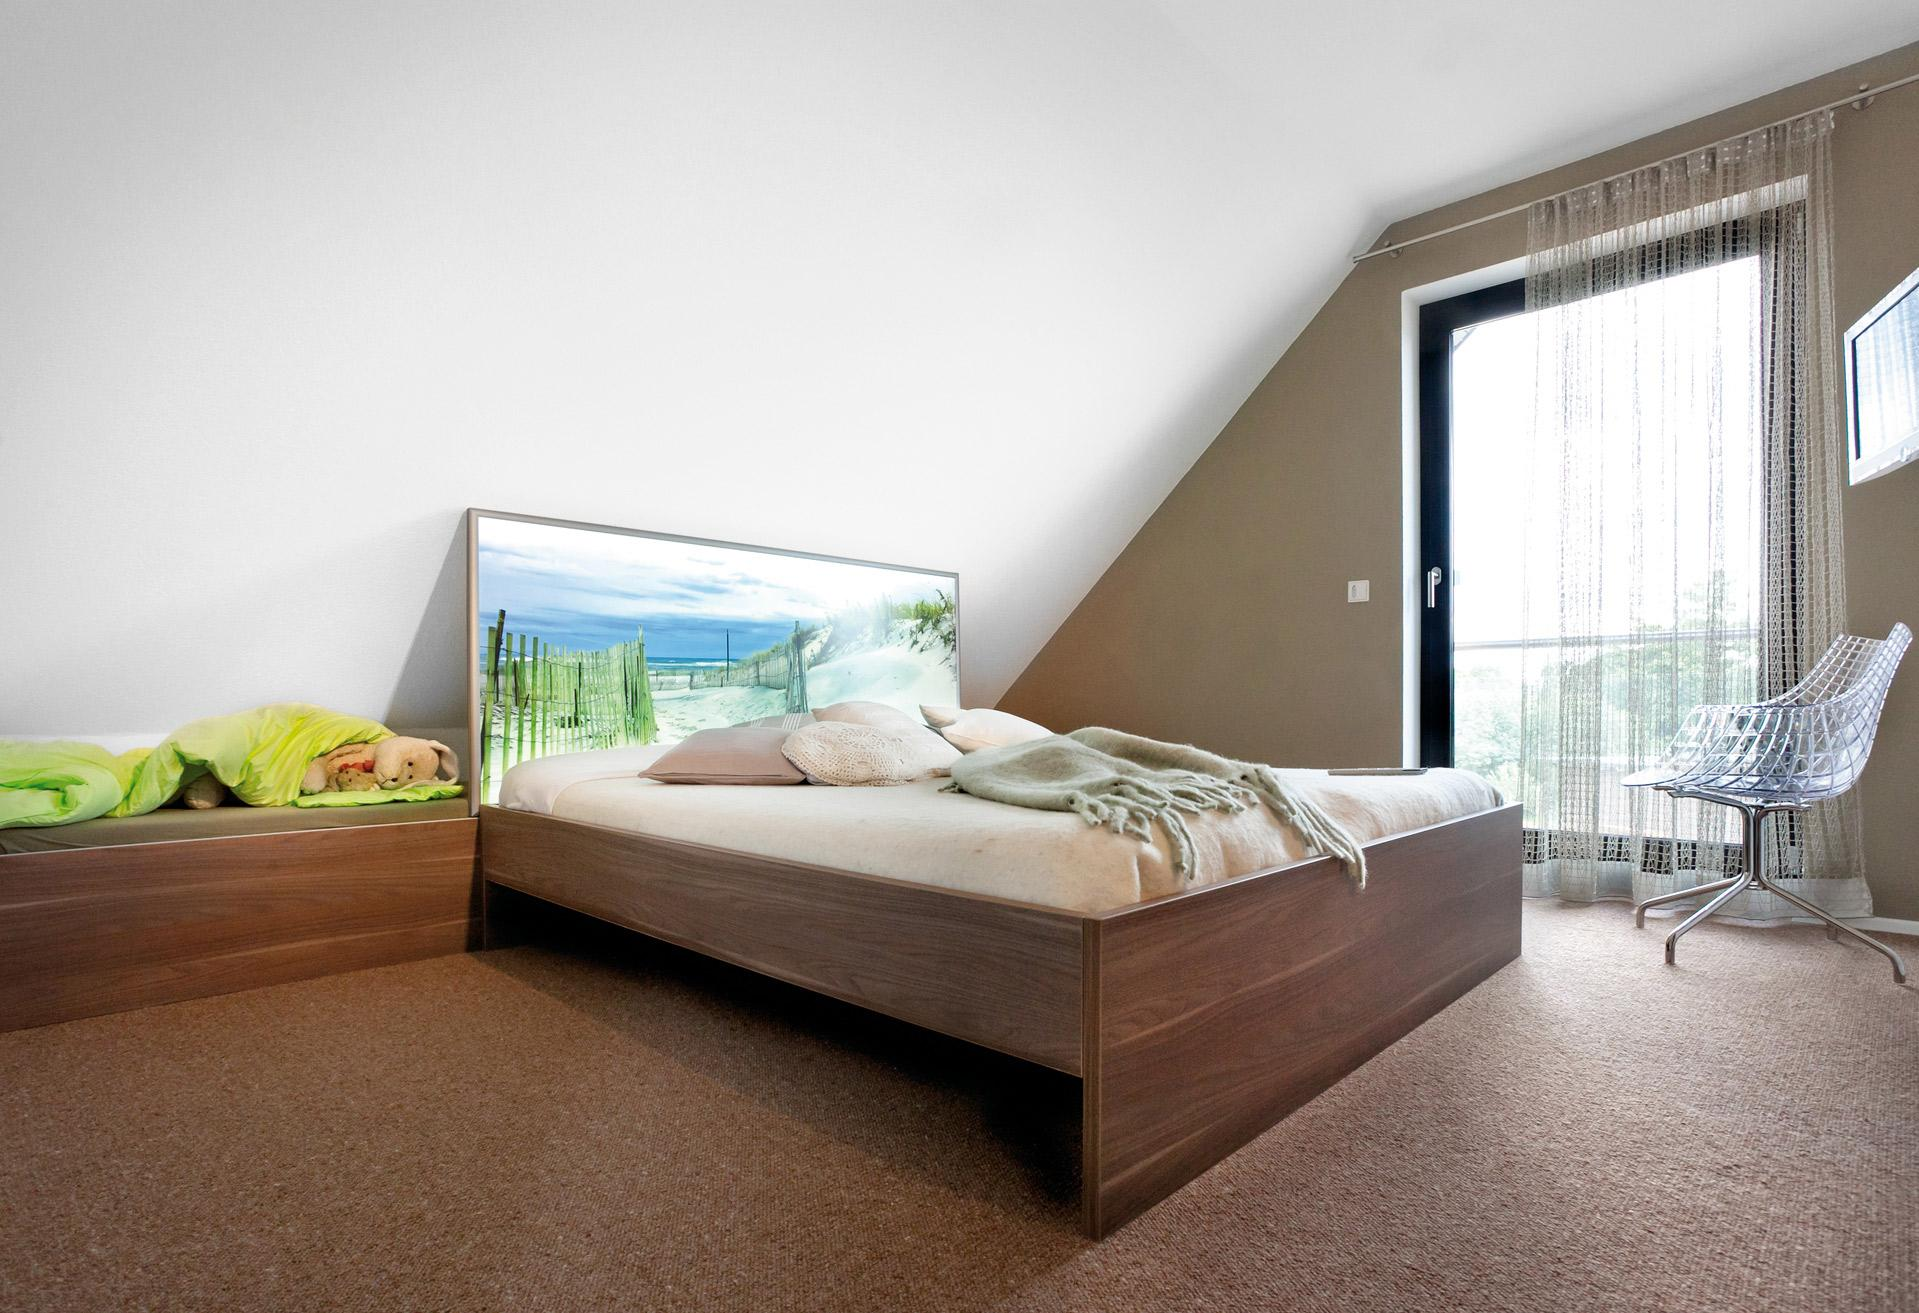 Bedroom with modern bed